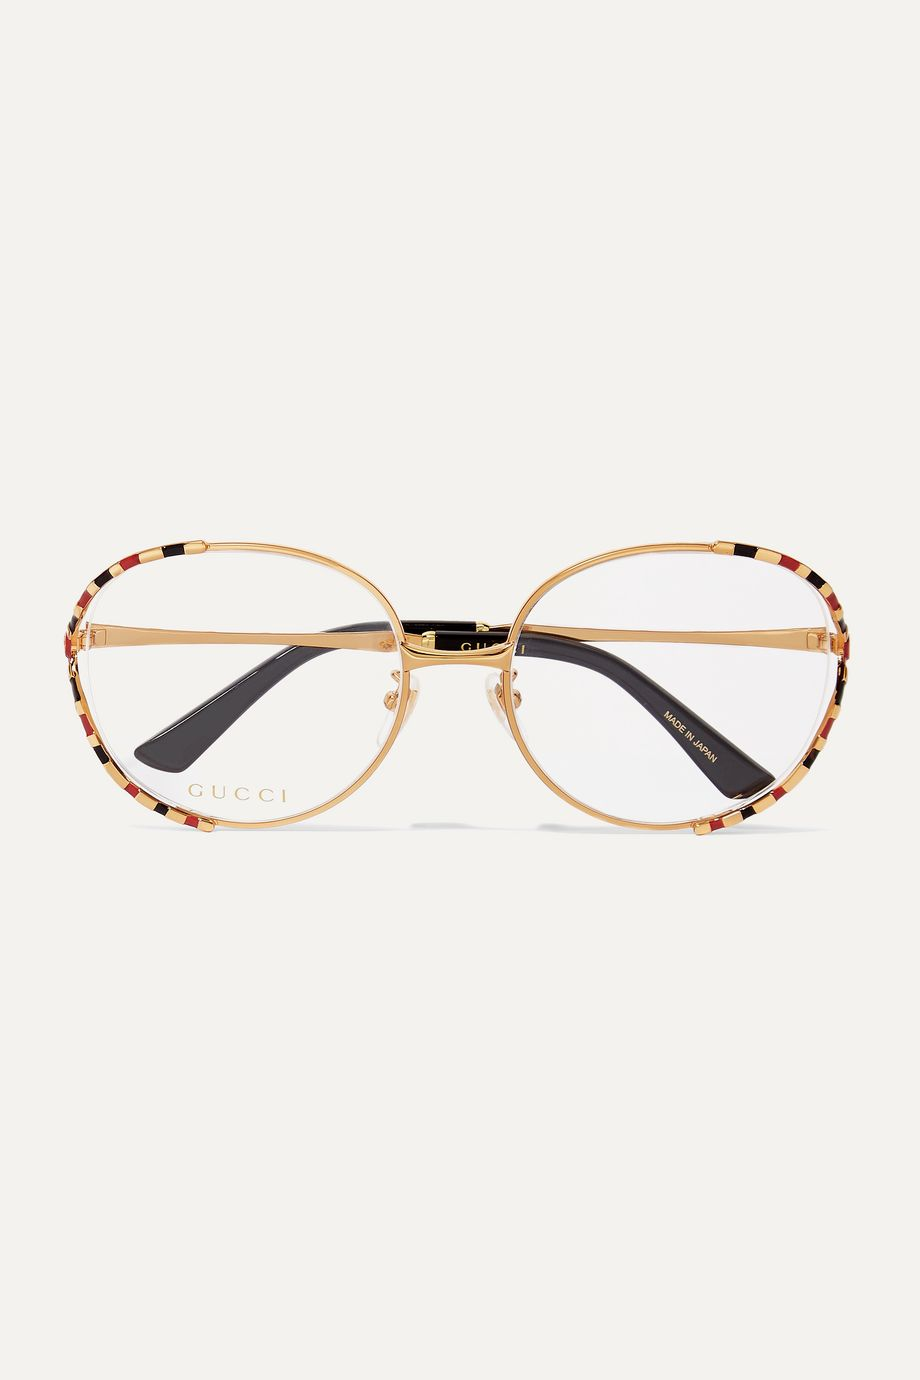 Gucci Fork square-frame gold-tone and enamel optical glasses